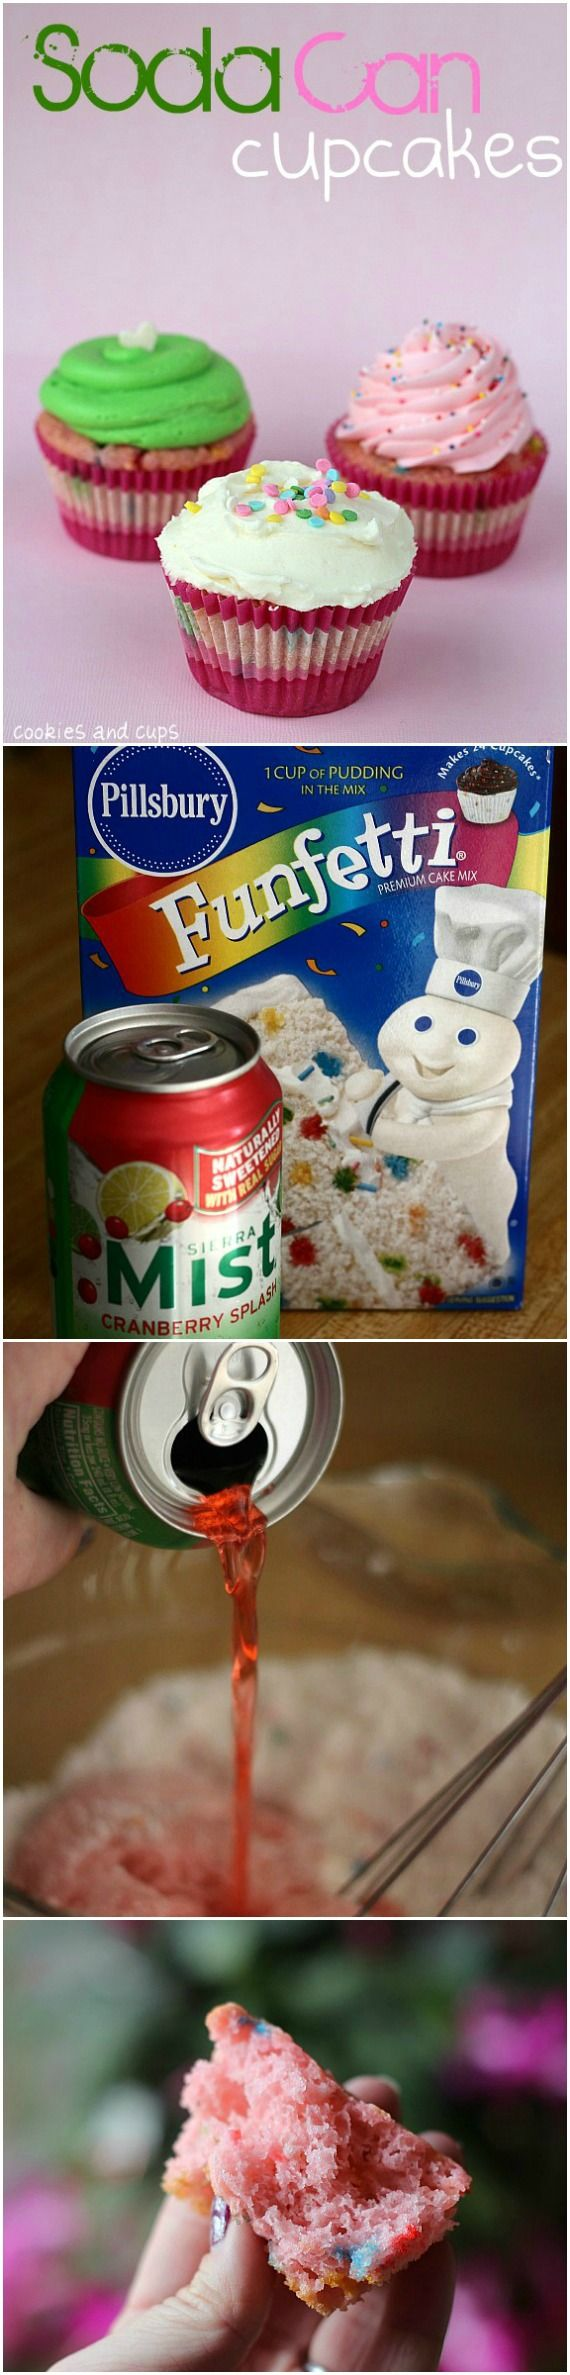 Soda cupcakes.. 2 ingredients, a can of soda and a box of cake mix! It's THAT EASY!